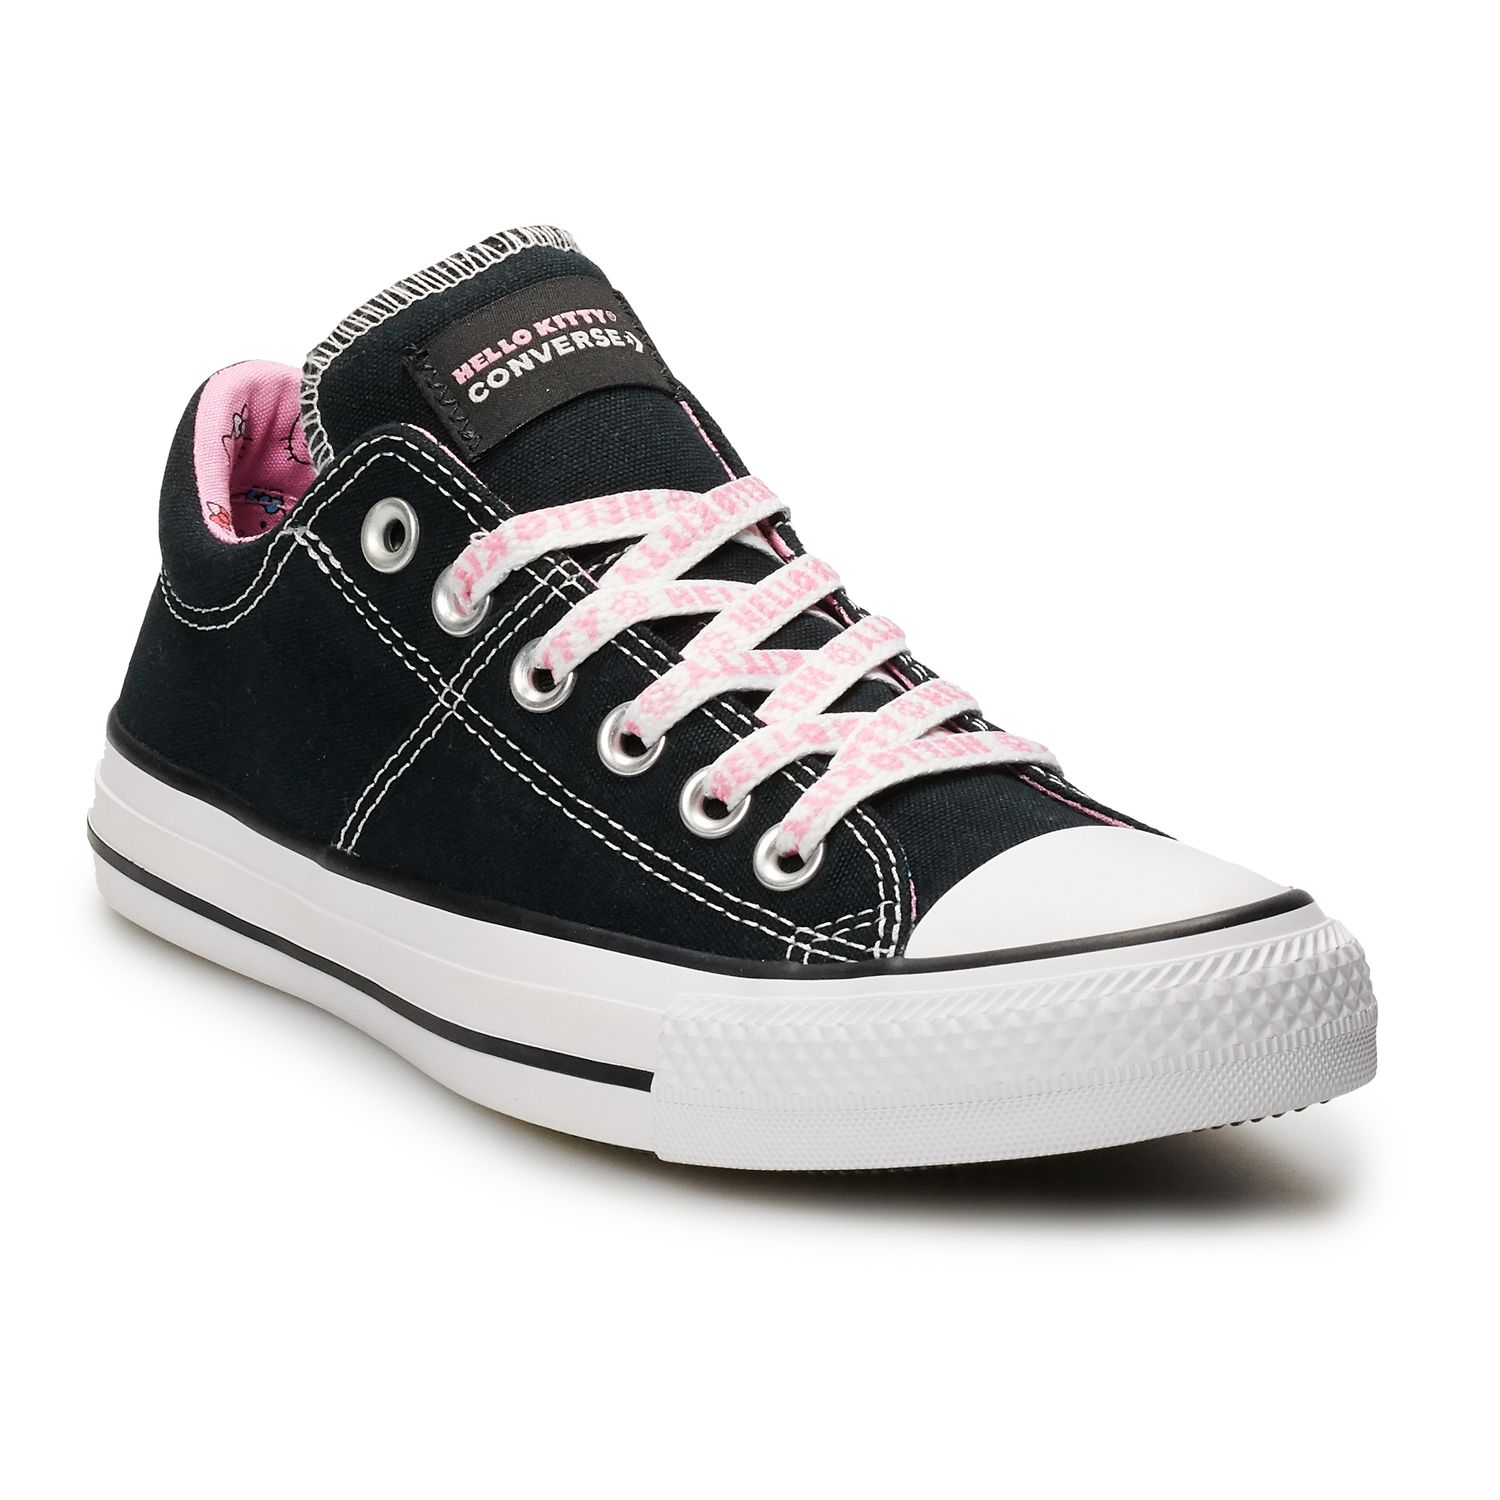 converse clothing, shoes \u0026 accessories kohl\u0027s  women\u0027s converse hello kitty� chuck taylor all star madison sneakers